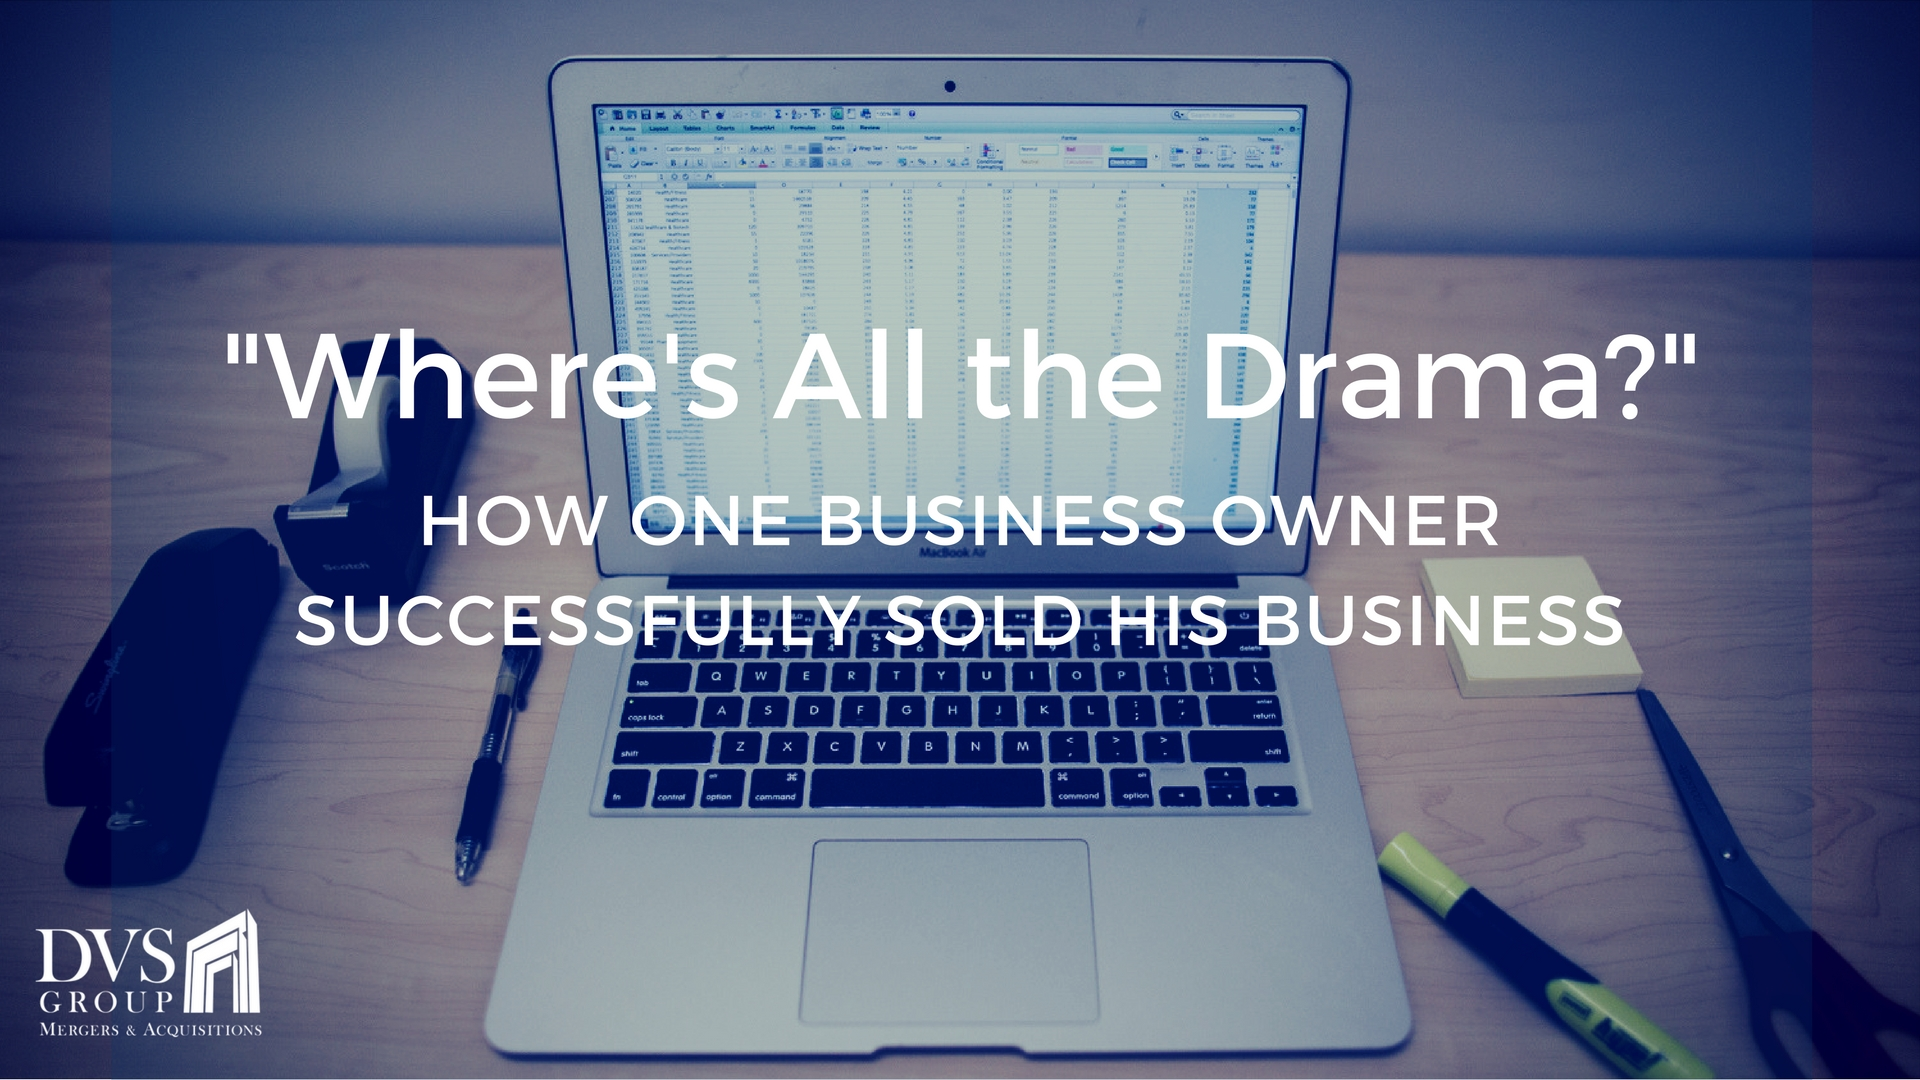 How One Business Owner Successfully Sold His Business